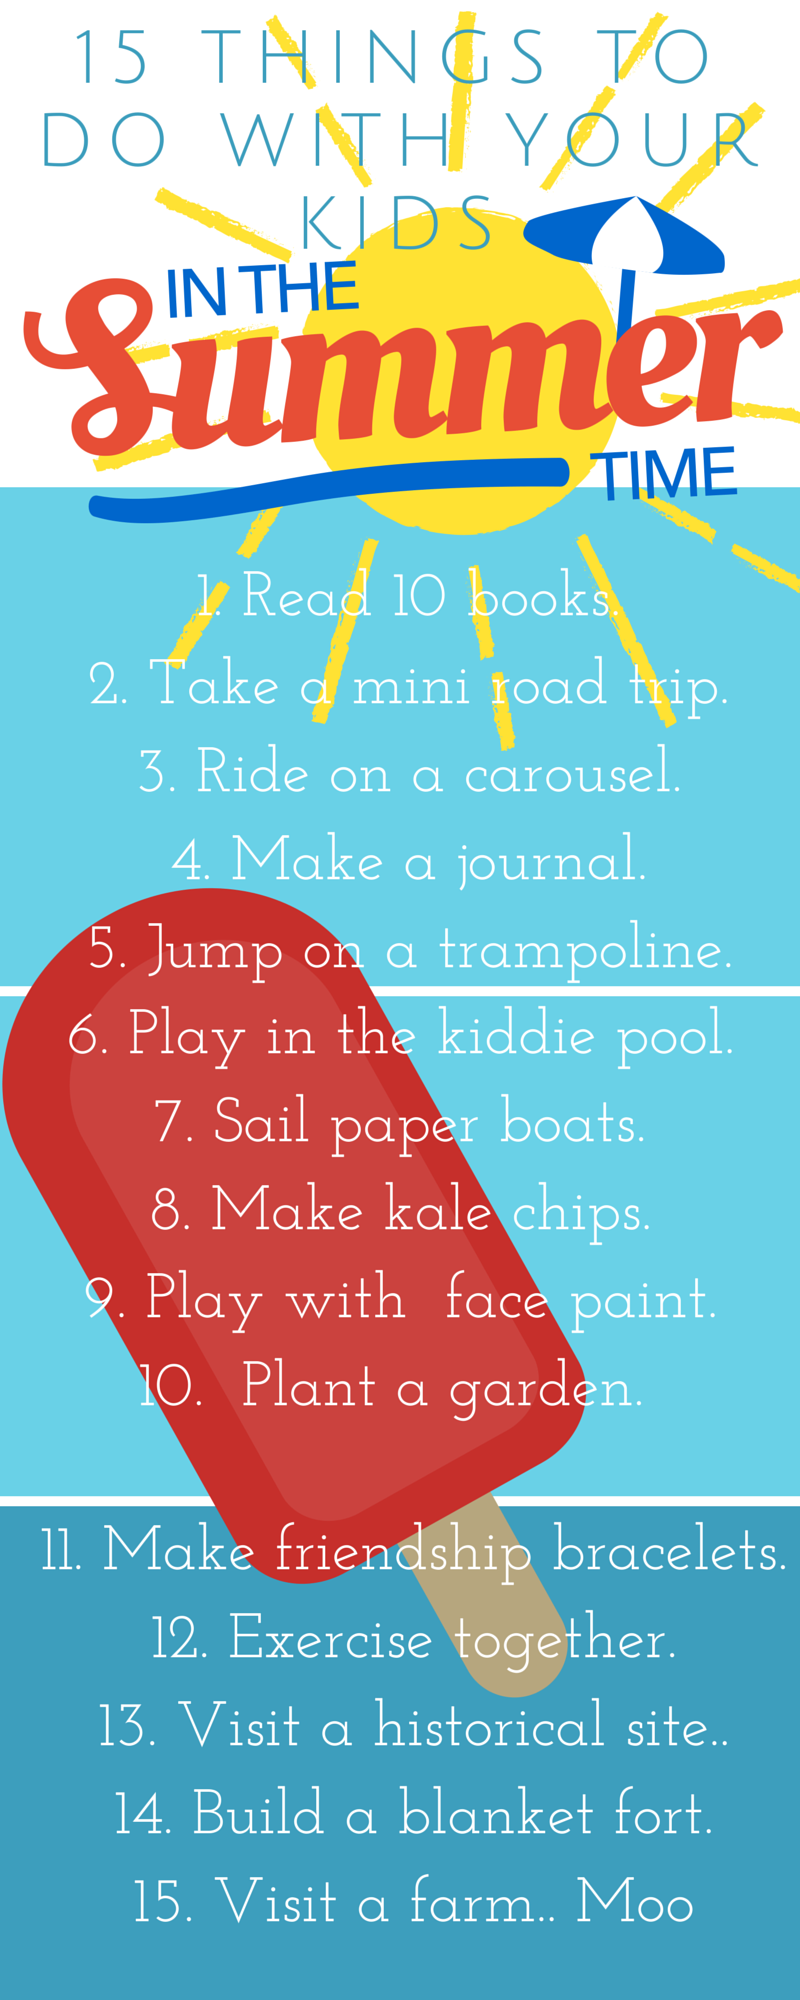 Things to do with your kids in the summer part 6